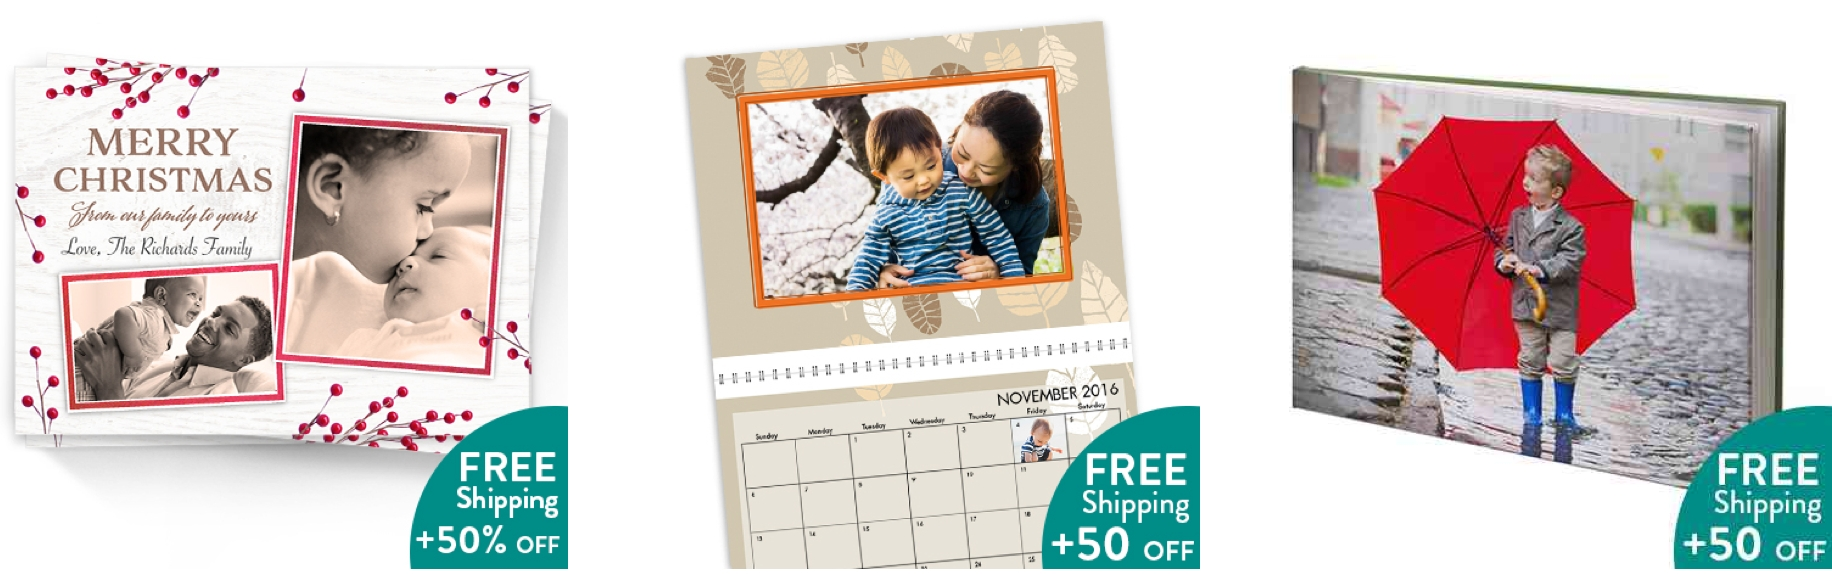 Snapfish: Two Personalized Wall Calendars Only $9.99 Shipped